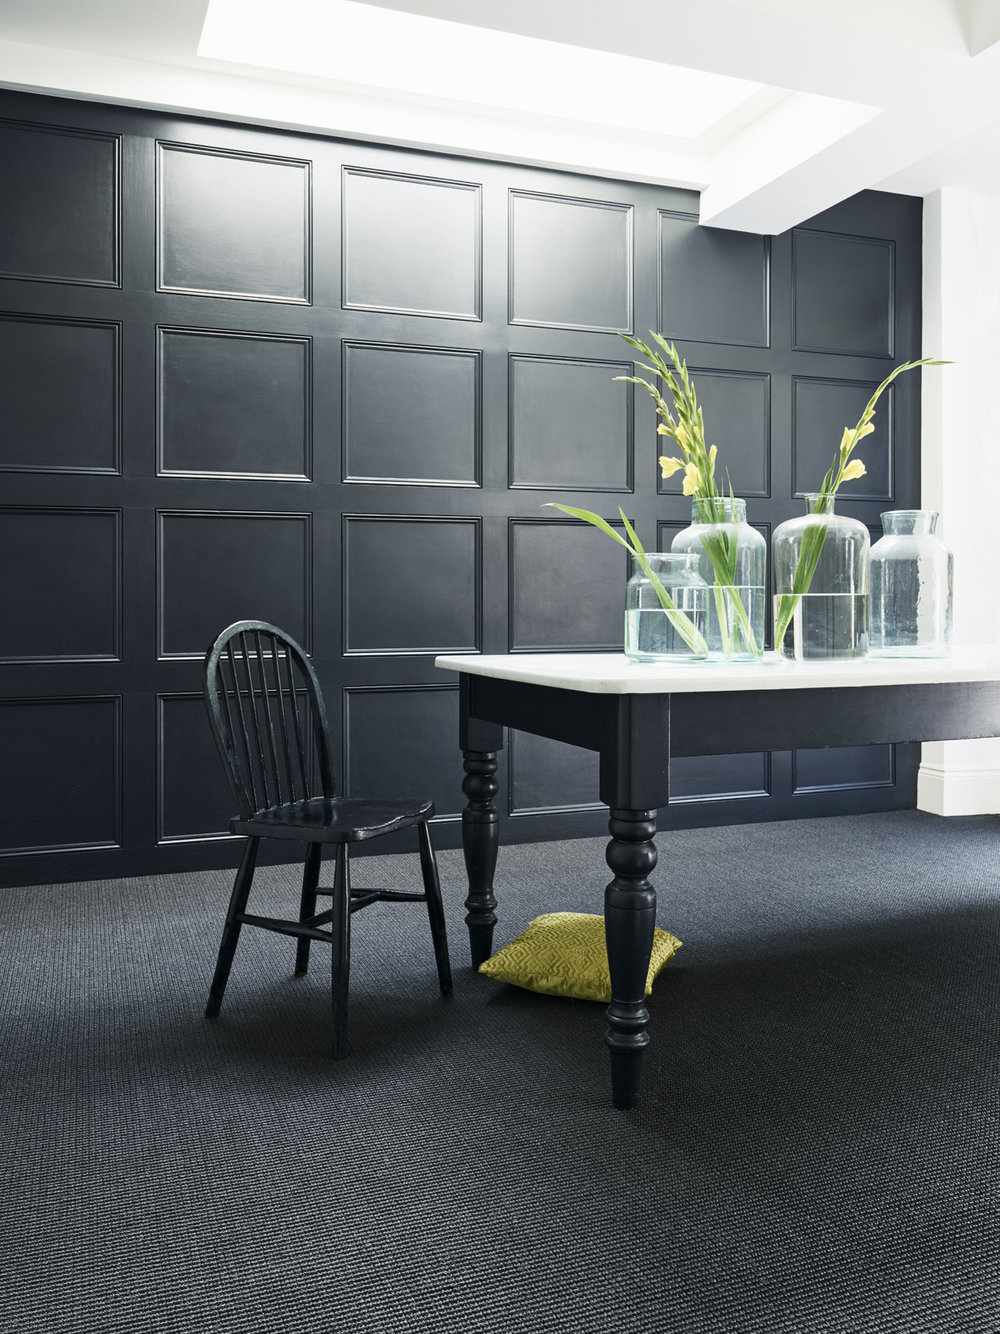 Sisal Big Boucle in Noir looks dramatic and modern with dark walls.